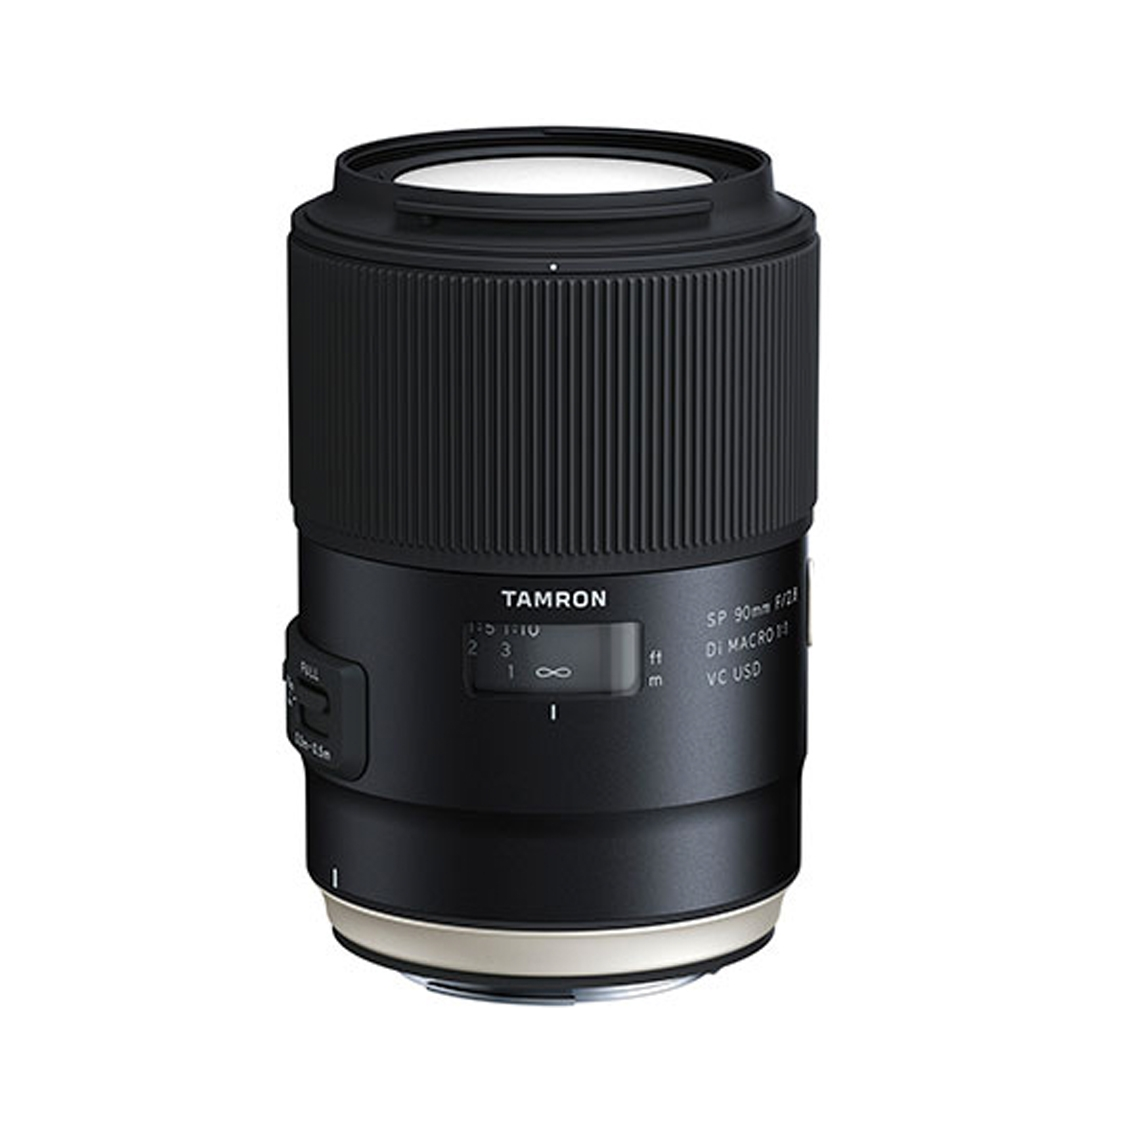 Tamron AF 90mm F2.8 DI VC USD II for Canon EF Mount